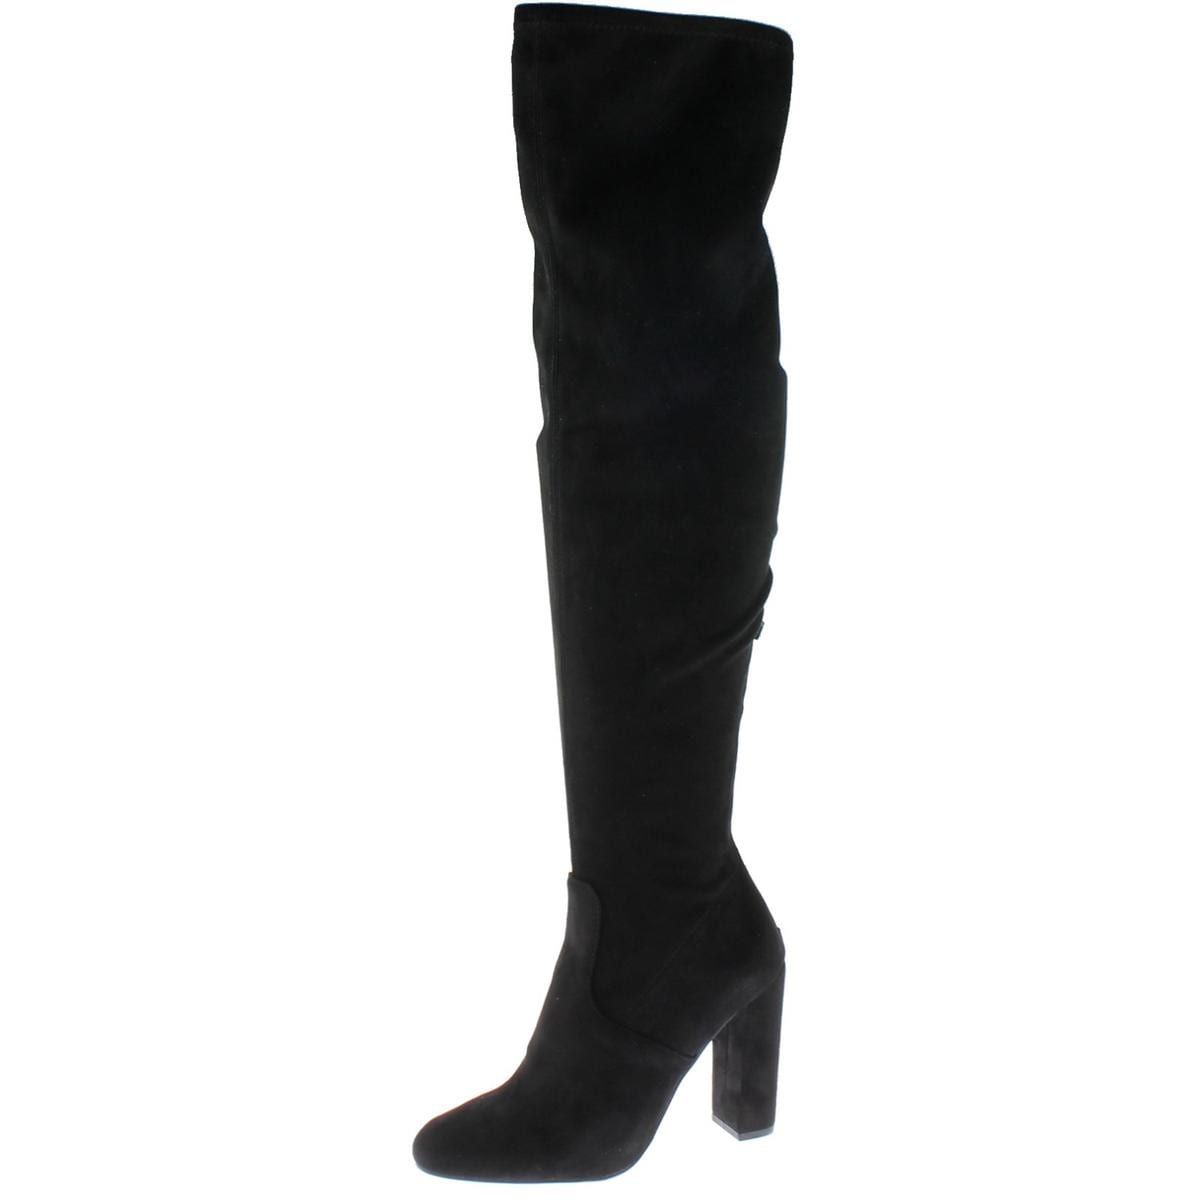 9f13bb8fb3f Shop Steve Madden Womens Emotions Over-The-Knee Boots Covered - On Sale -  Free Shipping Today - Overstock - 16151685